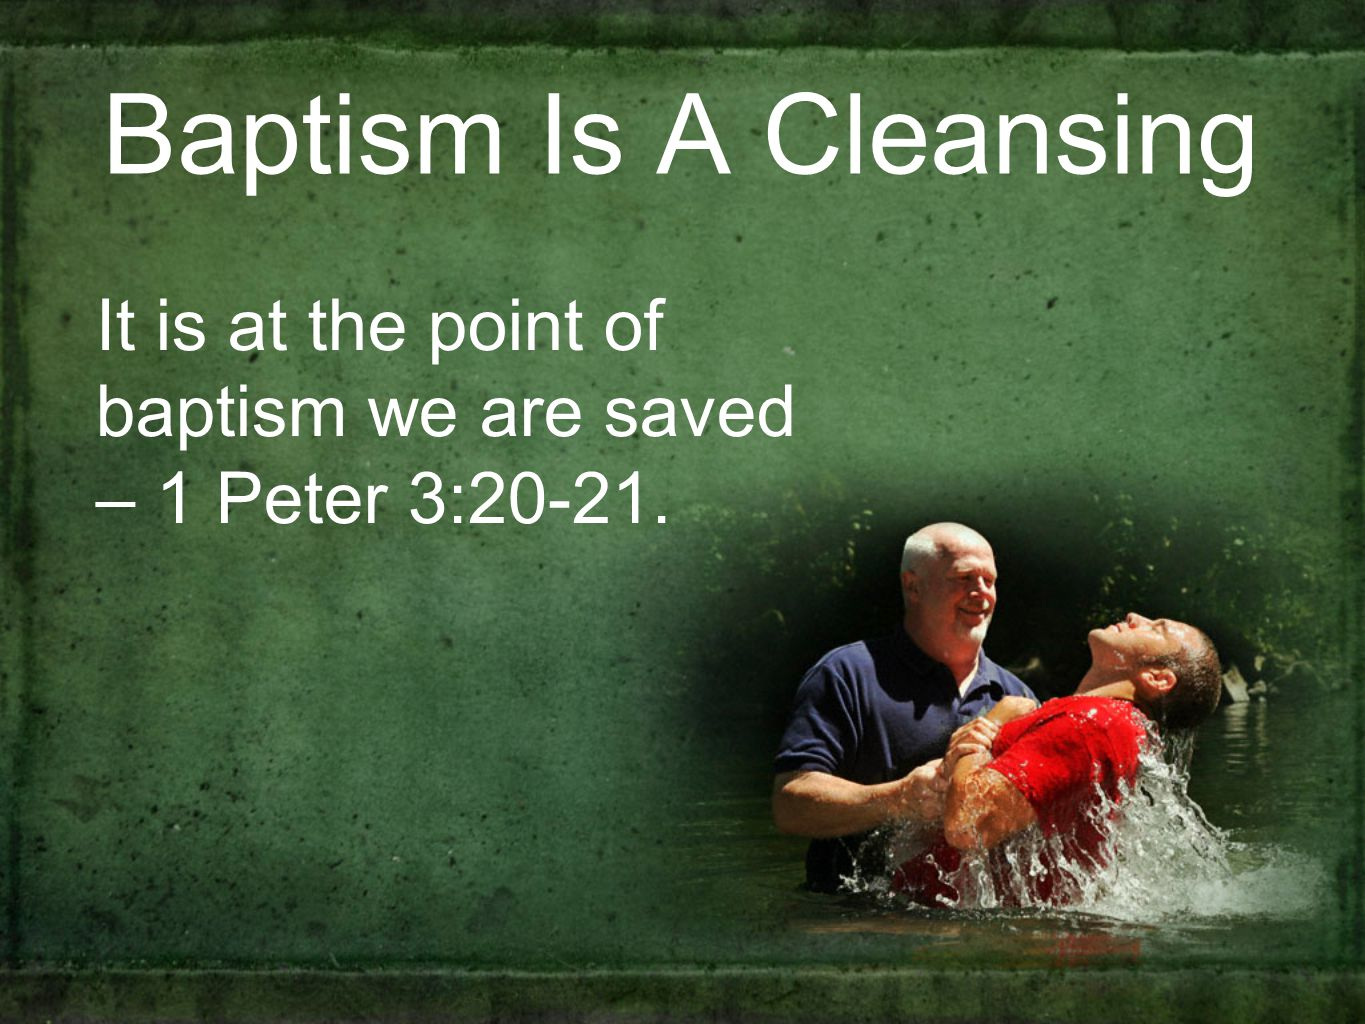 Baptism Is A Cleansing It is at the point of baptism we are saved – 1 Peter 3:20-21.